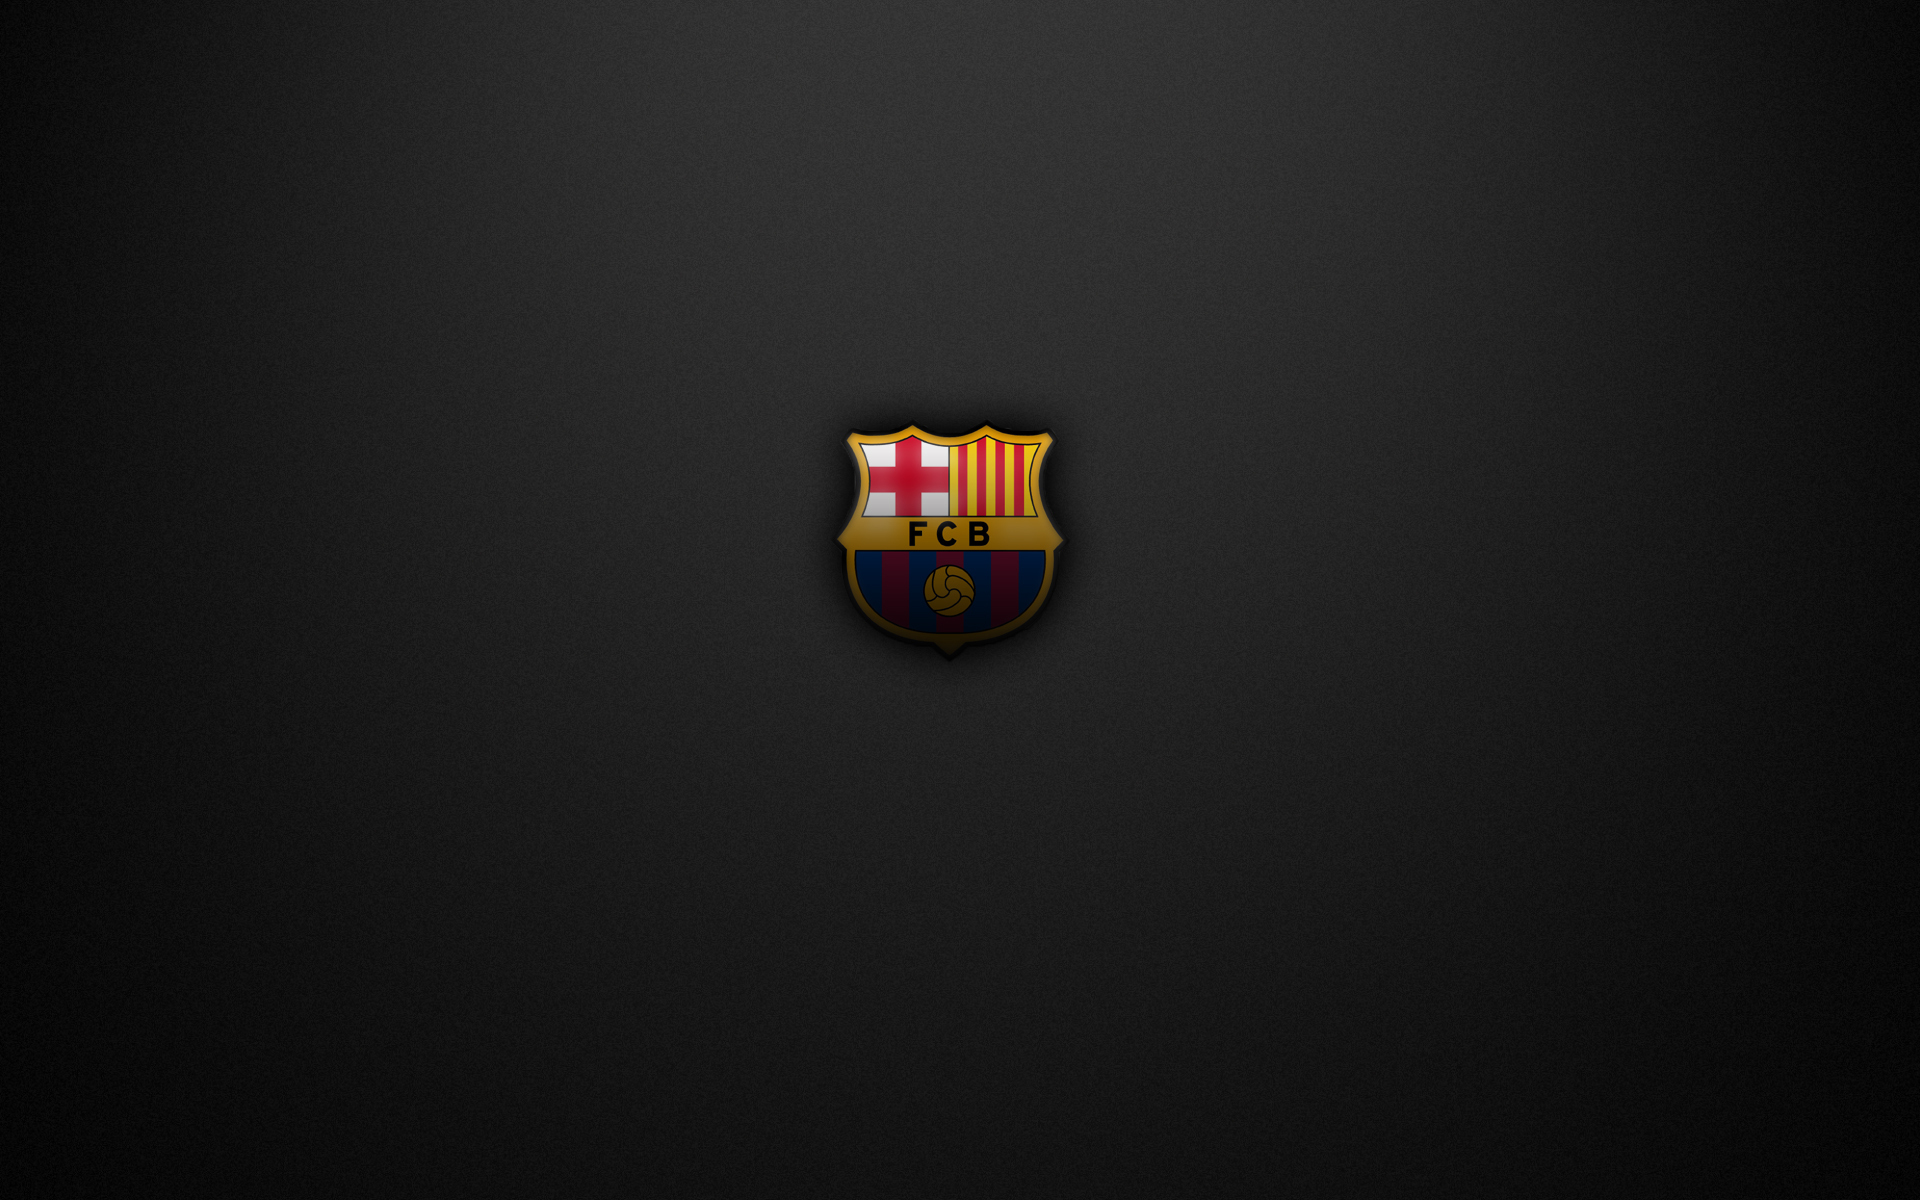 hd soccer wallpapers for iphone 4